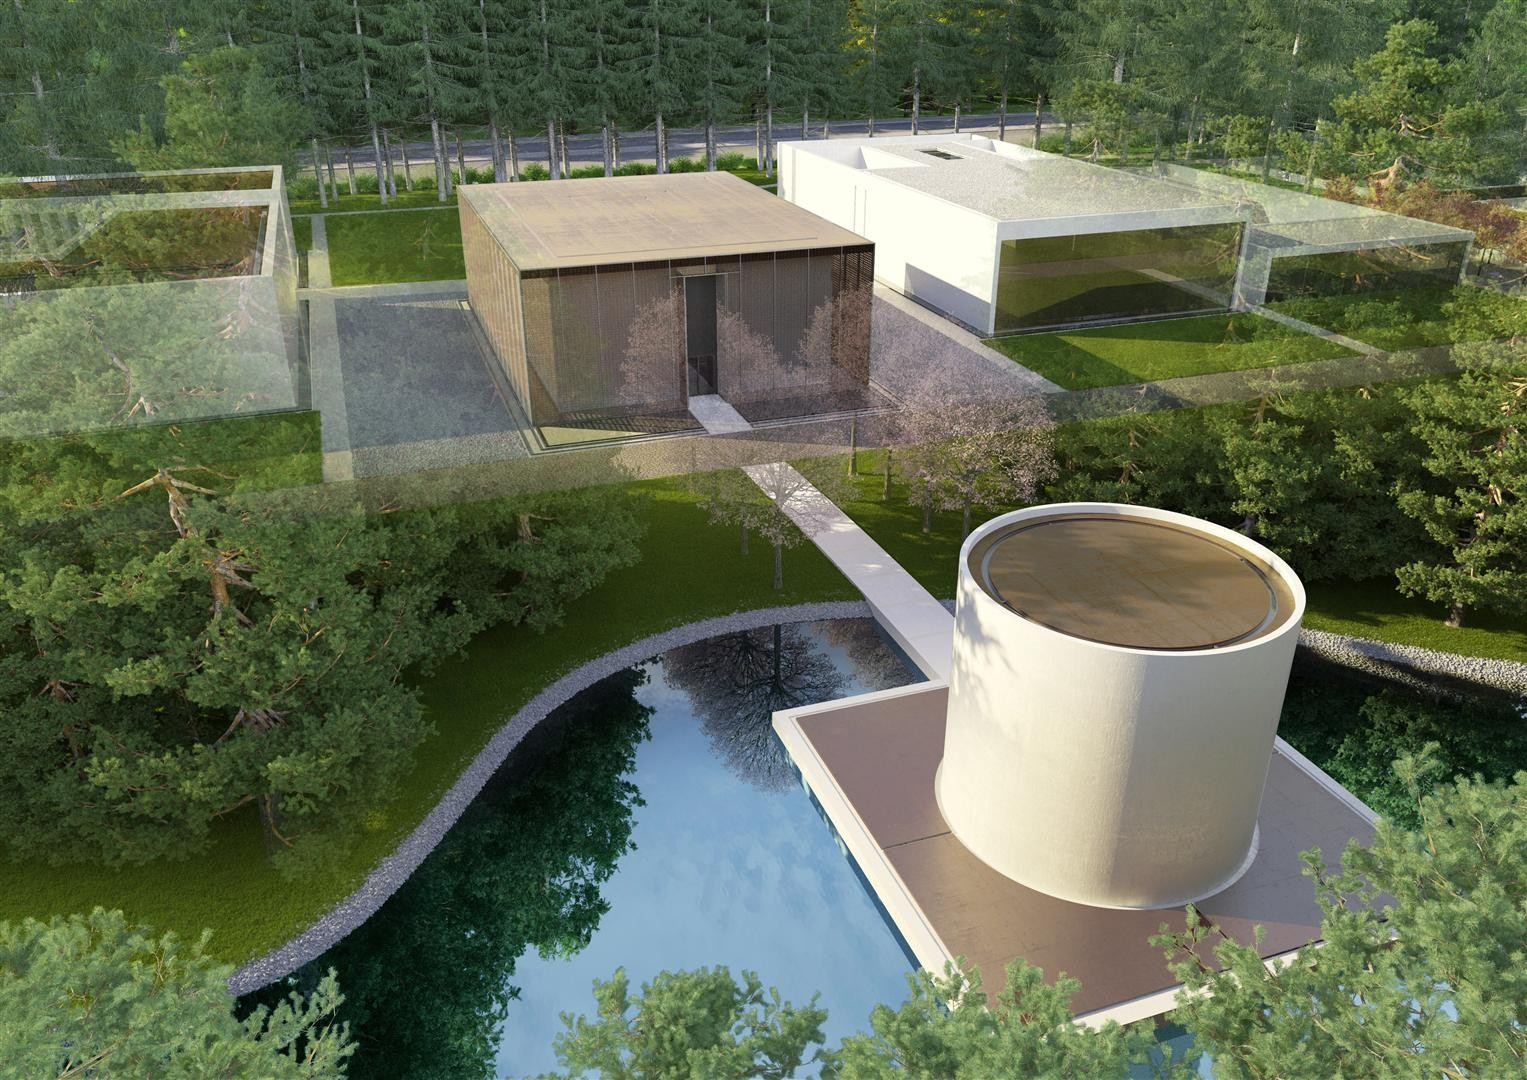 Sichtbeton moreover 5178b0e4b3fc4bc6760000d6 Famen Temple Zen Meditation Center Winning Proposal Oac Image likewise 421972613 furthermore St Elmos Breath likewise Index. on tadao ando